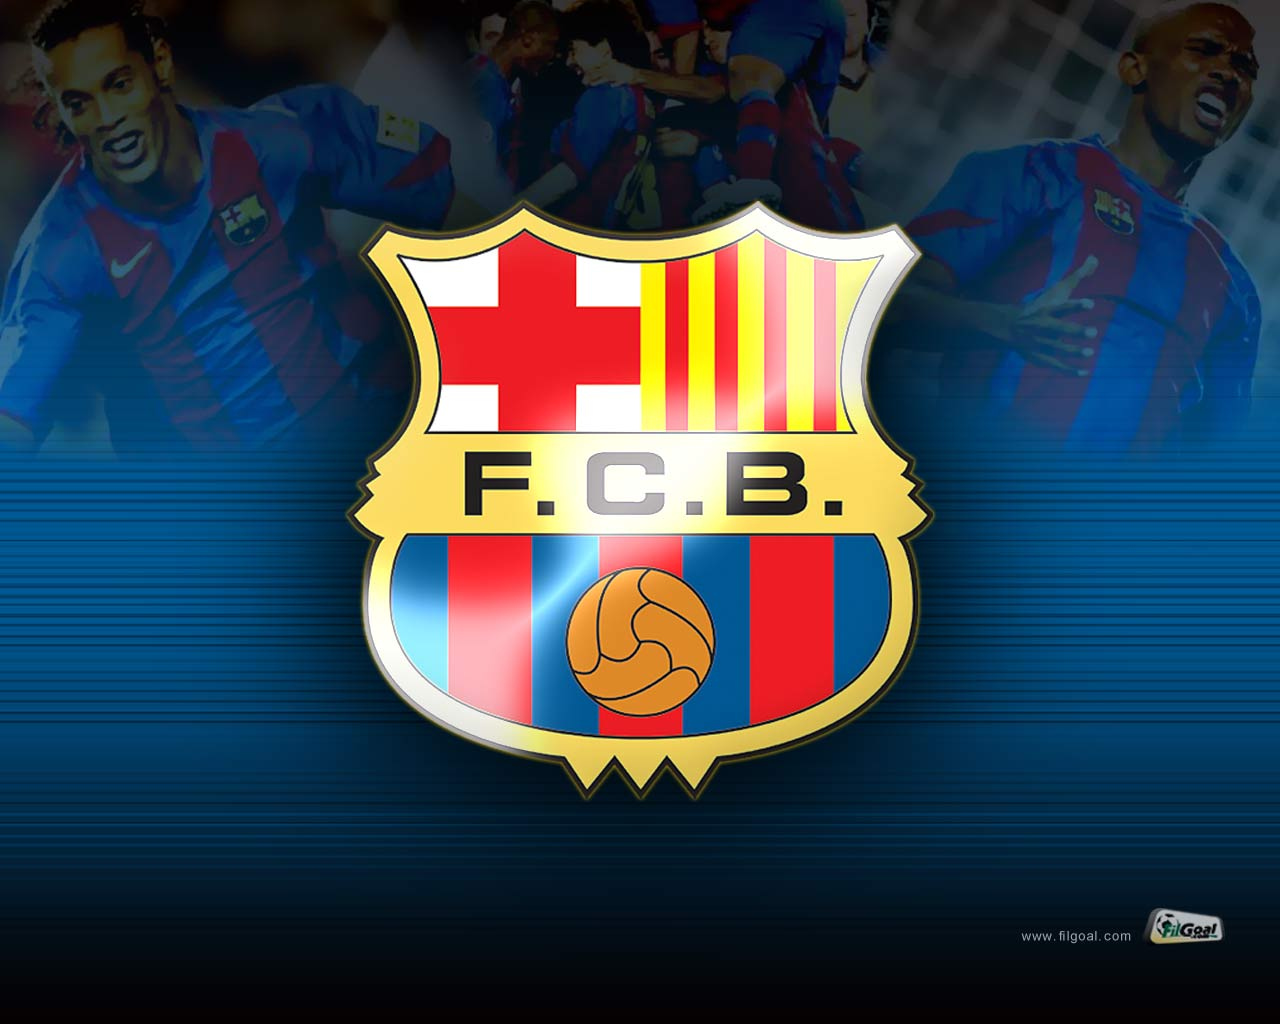 http://images.fanpop.com/images/image_uploads/FC-Barcelona-Wallpapers-fc-barcelona-484411_1280_1024.jpg